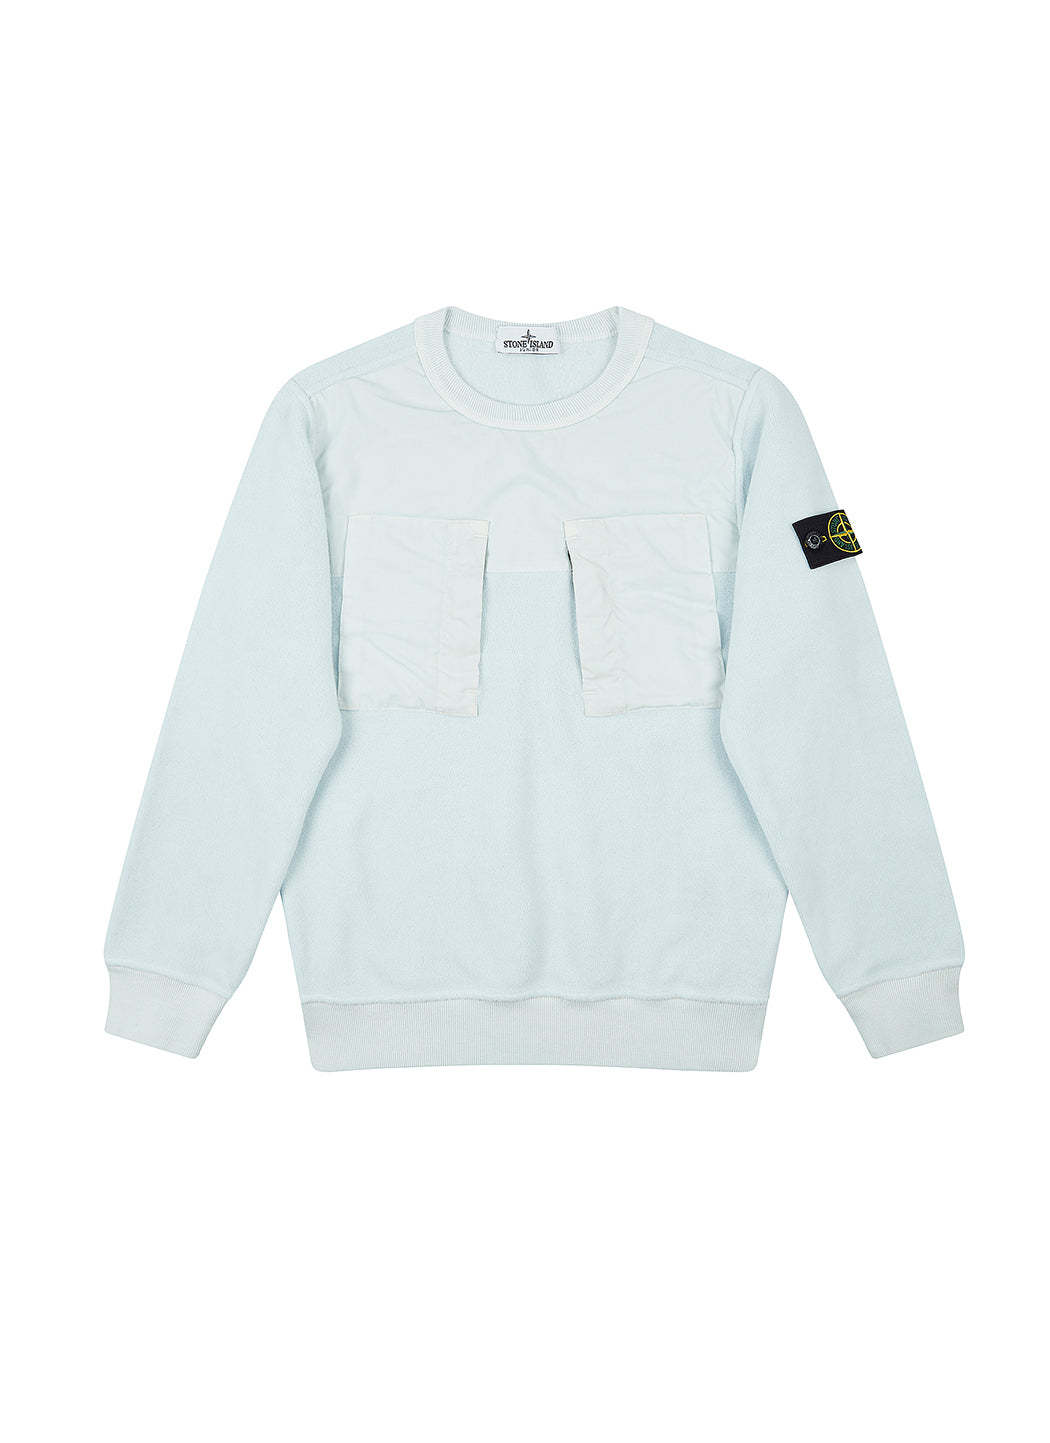 60544 Sweatshirt in Aqua